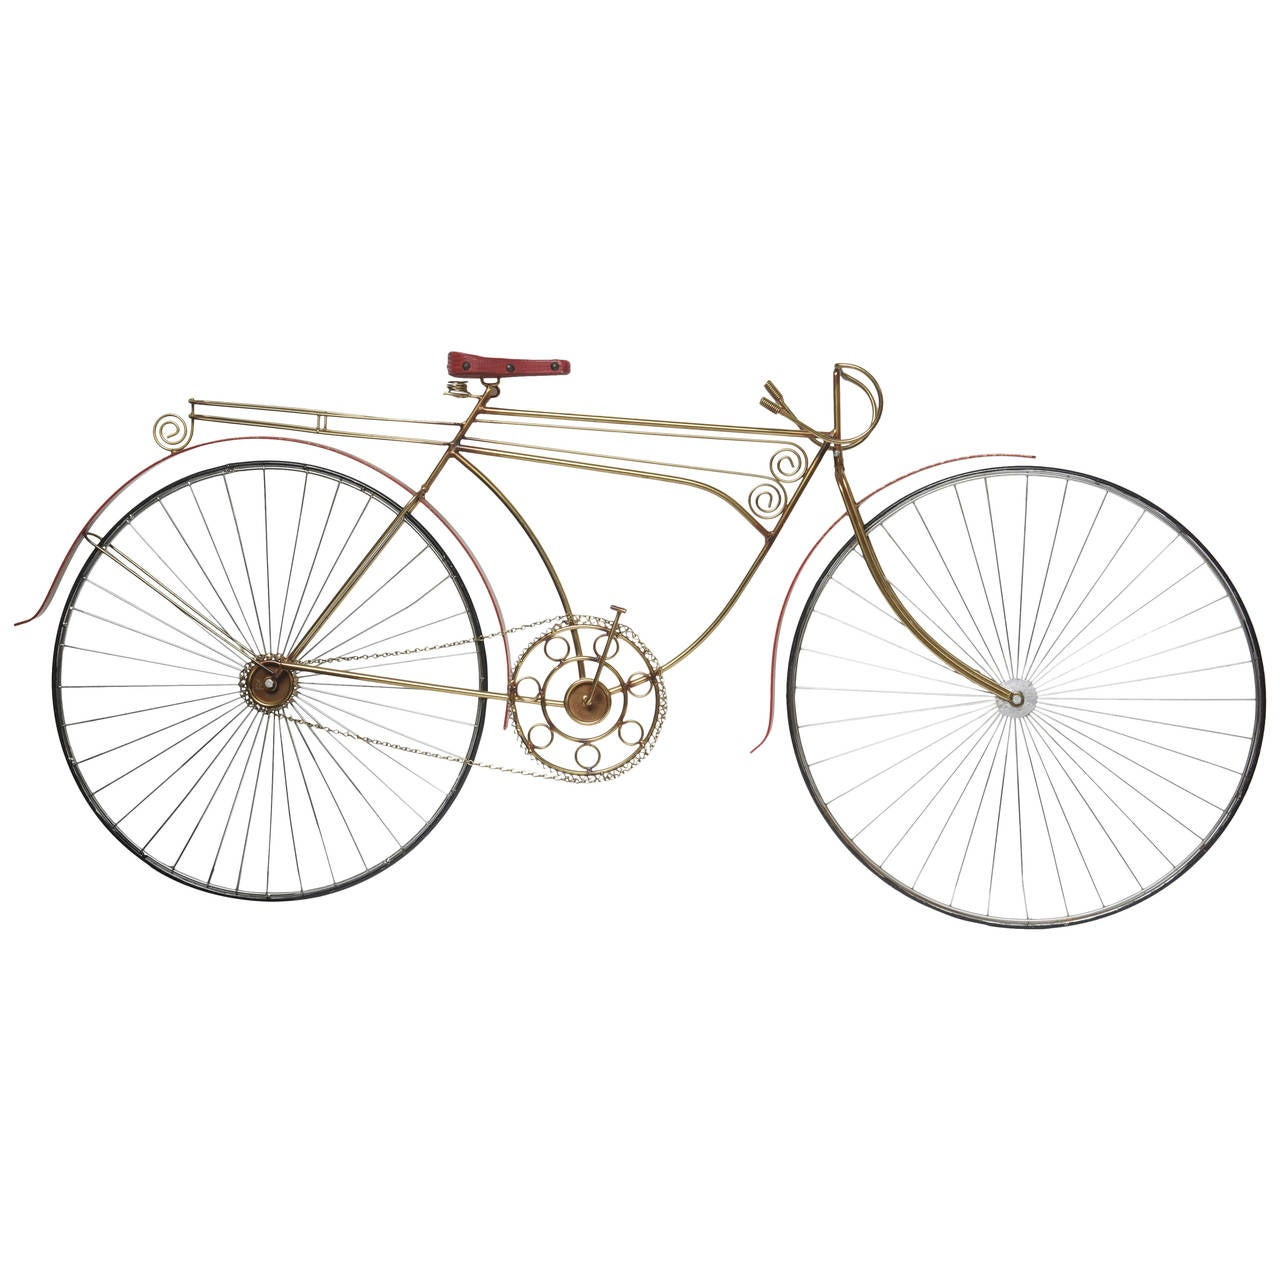 Curtis jere bicycle wall art sculpture at 1stdibs for Bicycle wheel wall art